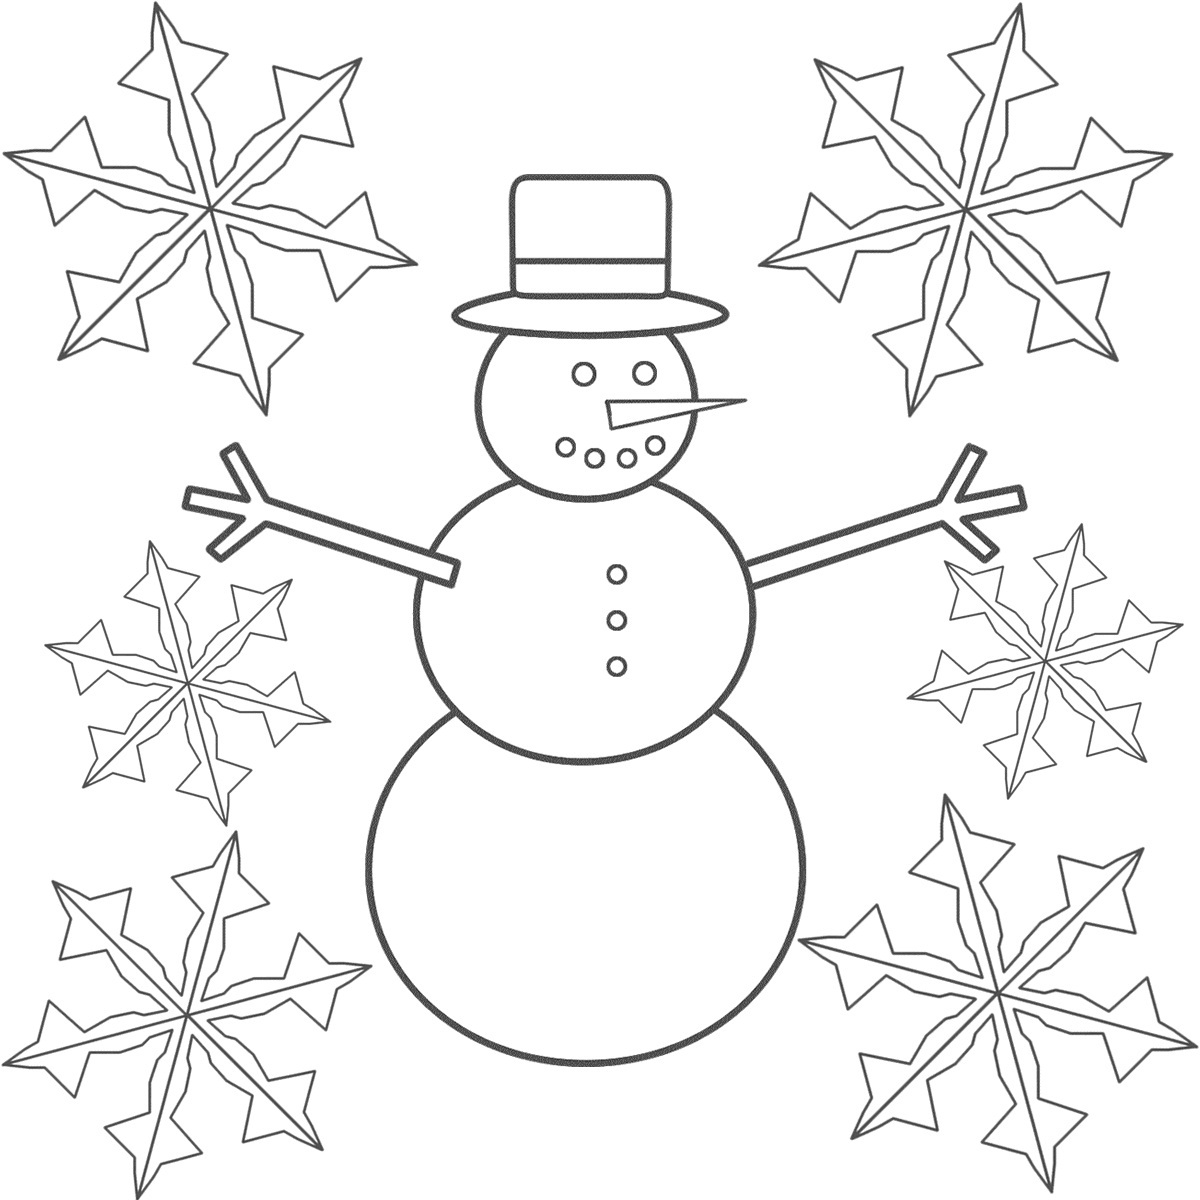 snowflakes coloring page printable snowflake coloring pages for kids cool2bkids coloring page snowflakes